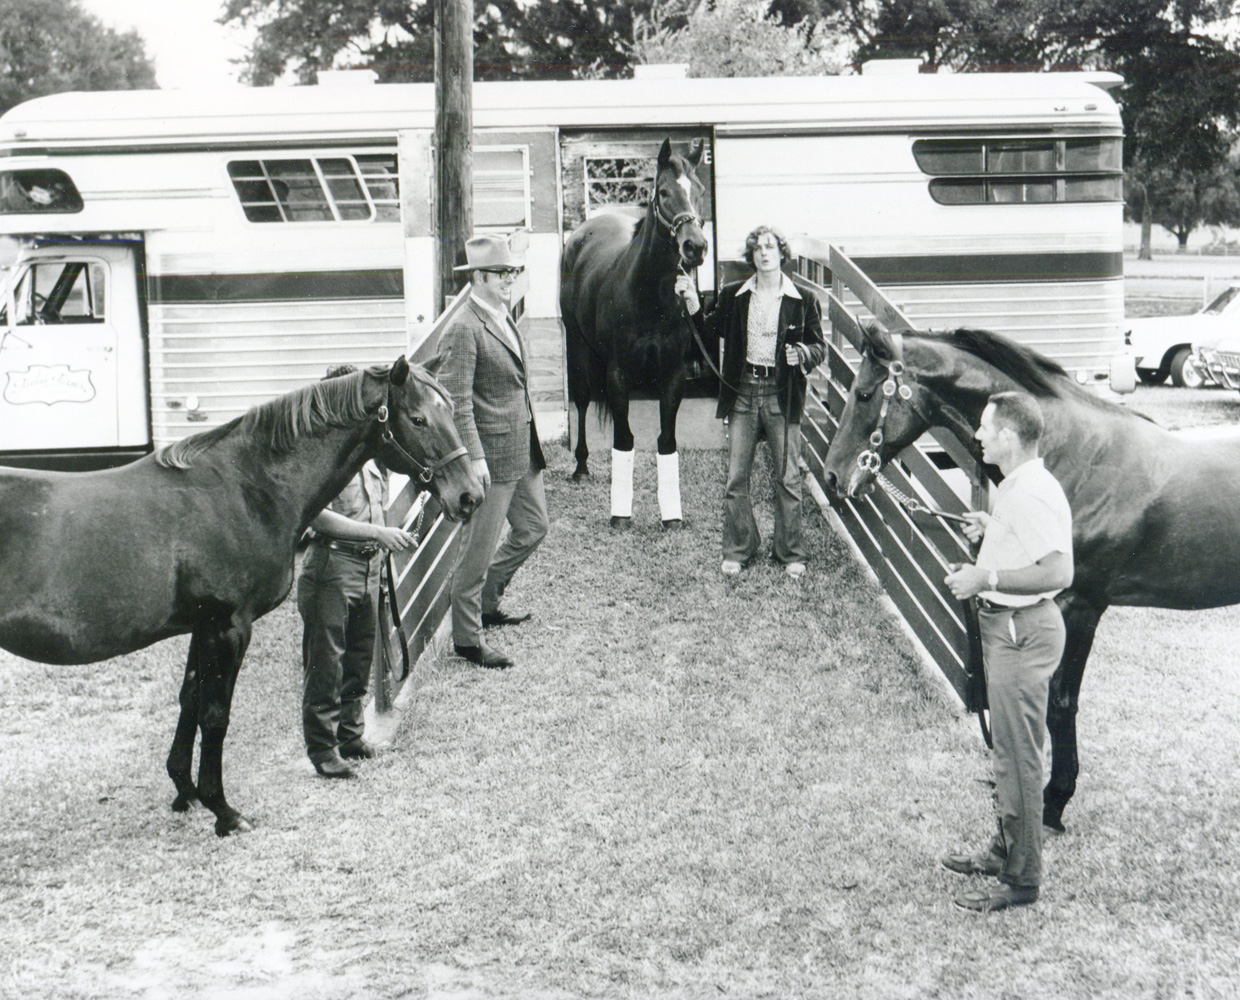 Aspidistra (left), Ta Wee (center), and Dr. Fager (right) (Museum Collection)